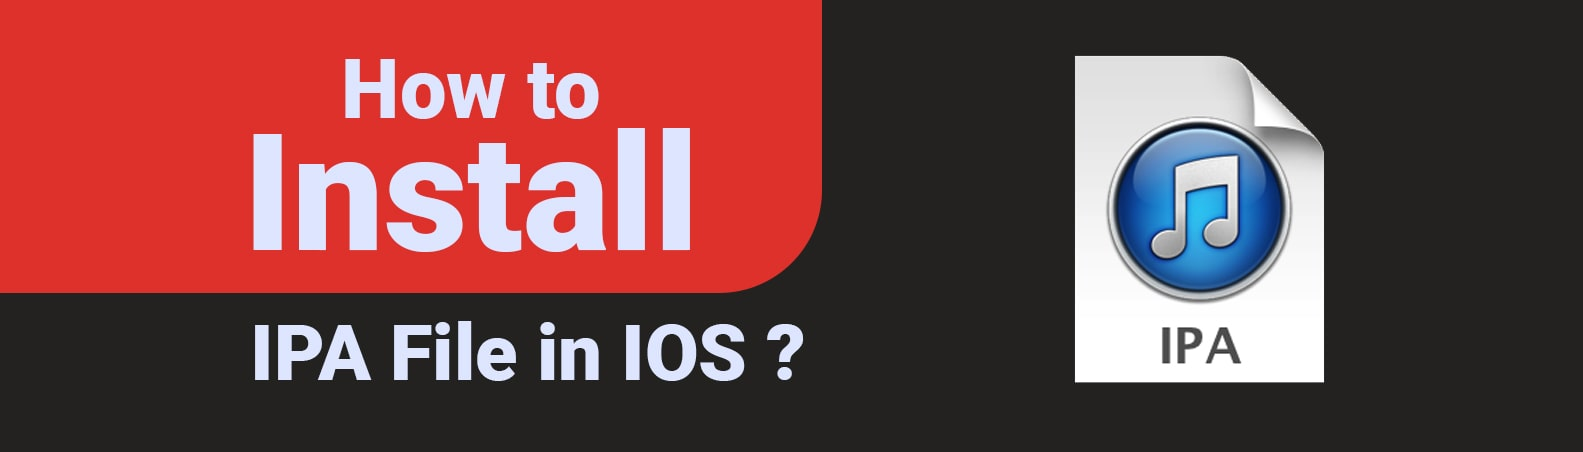 How to Install IPA File in IOS ? - IOS App IPA